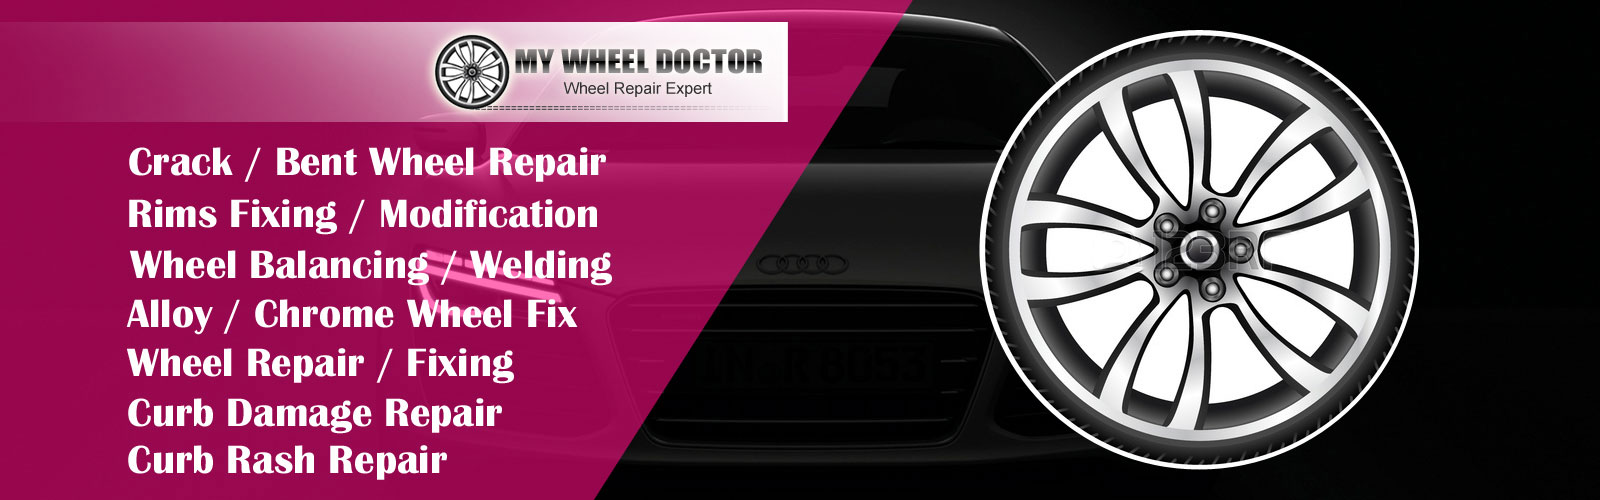 Houston Auto Repair Crack Bent Wheel Rim Repair Wheel Balancing